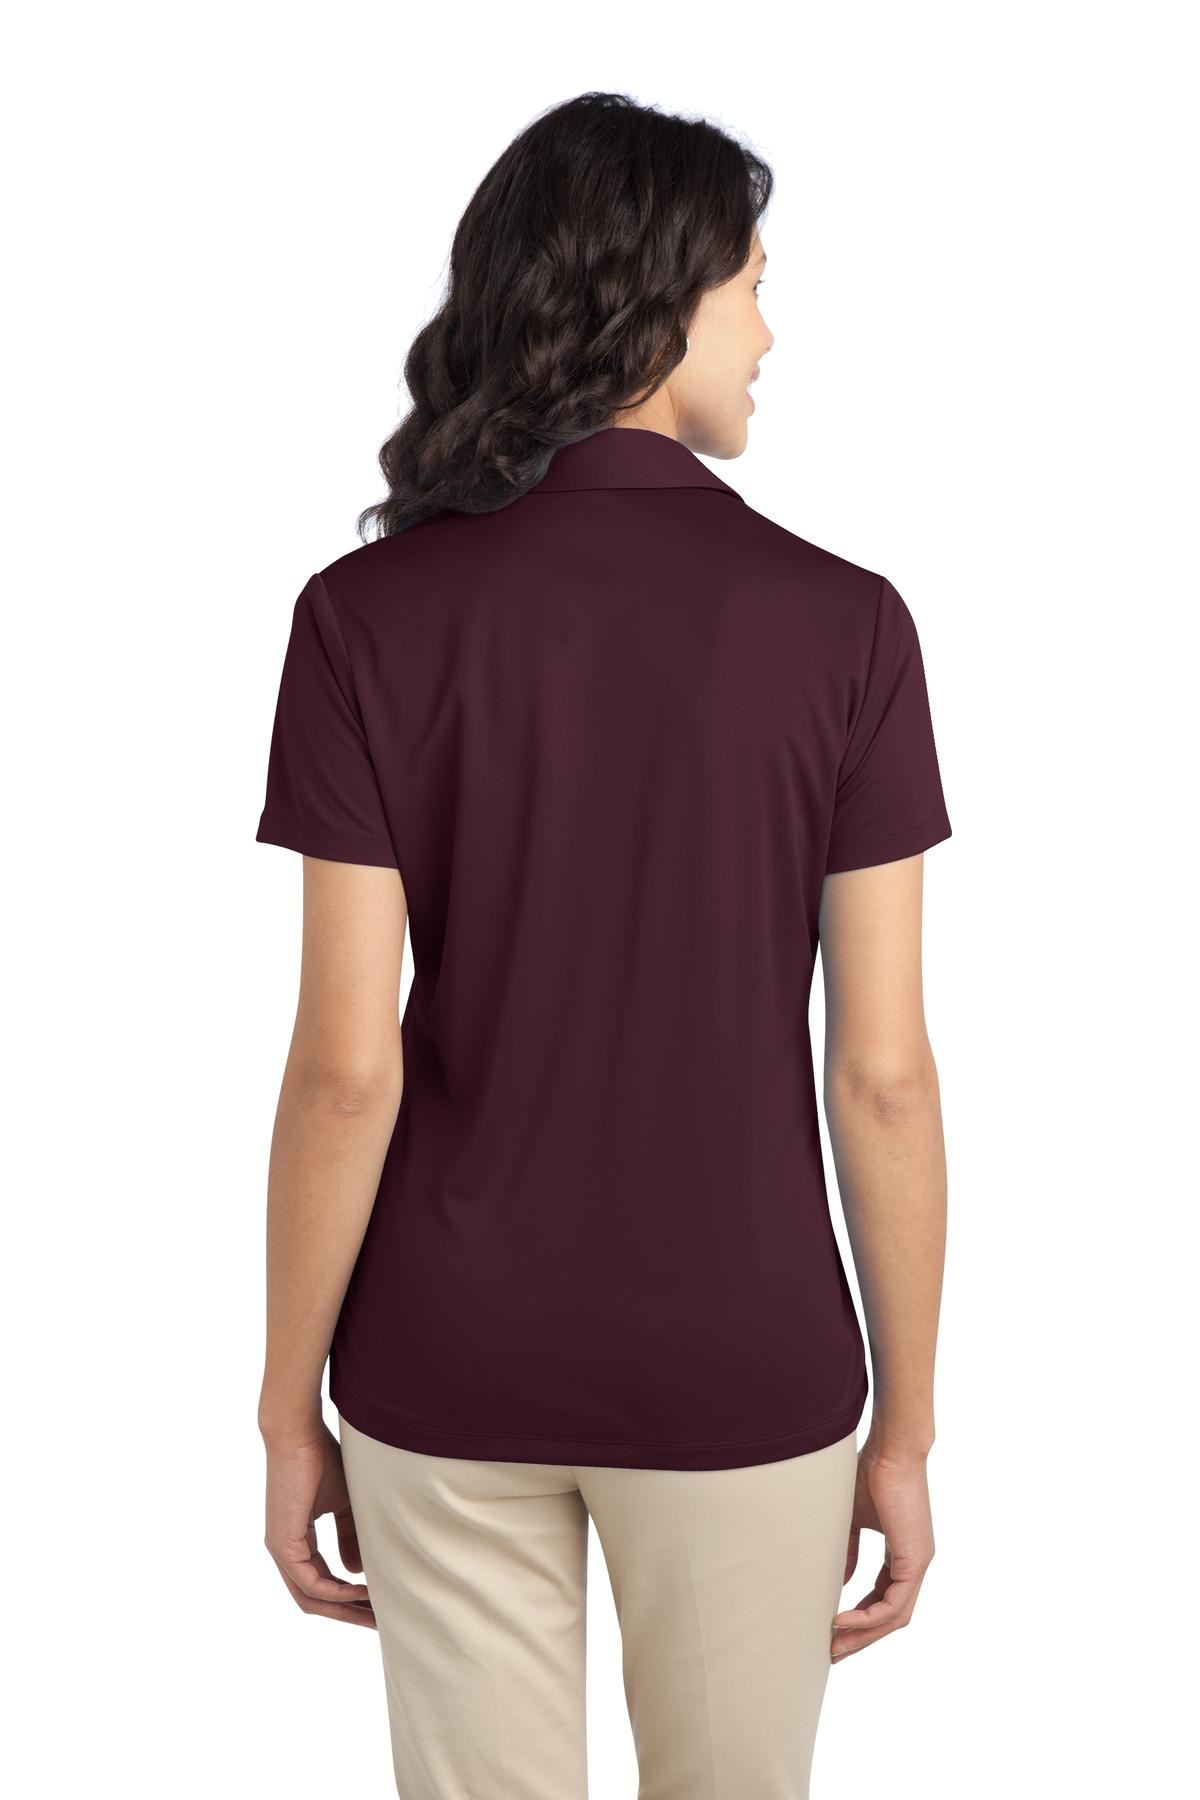 Port-Authority-Womens-Dri-Fit-SIlk-Touch-Performance-Polo-Golf-Shirt-M-L540 thumbnail 17